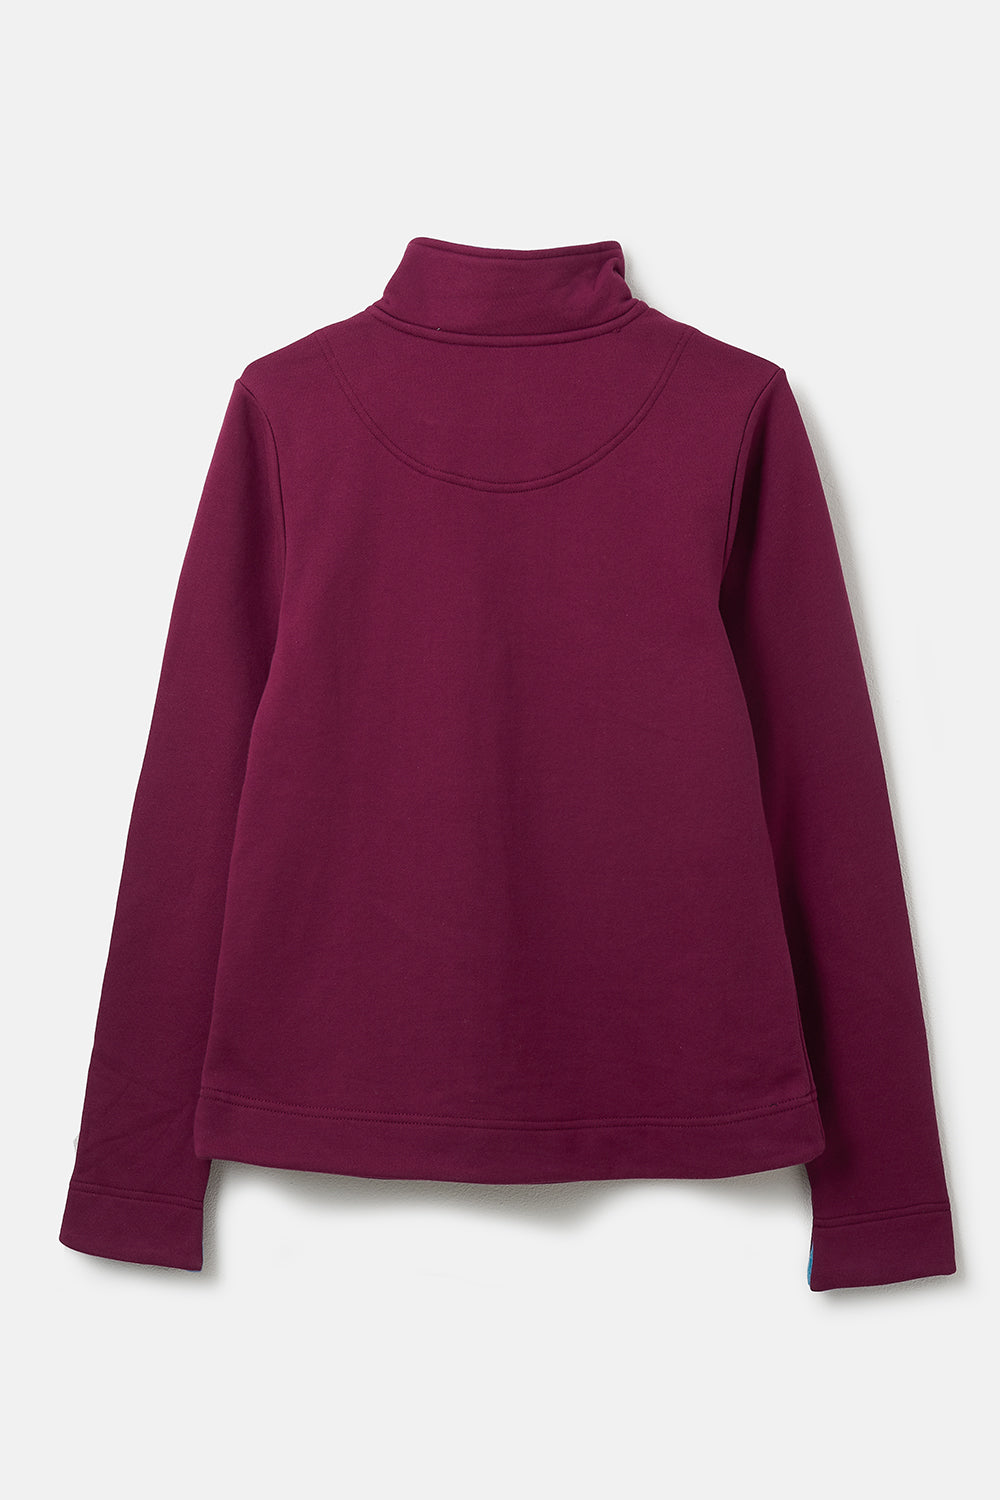 Shore Sweatshirt. 100% Cotton Women's Purple Pullover | Lighthouse